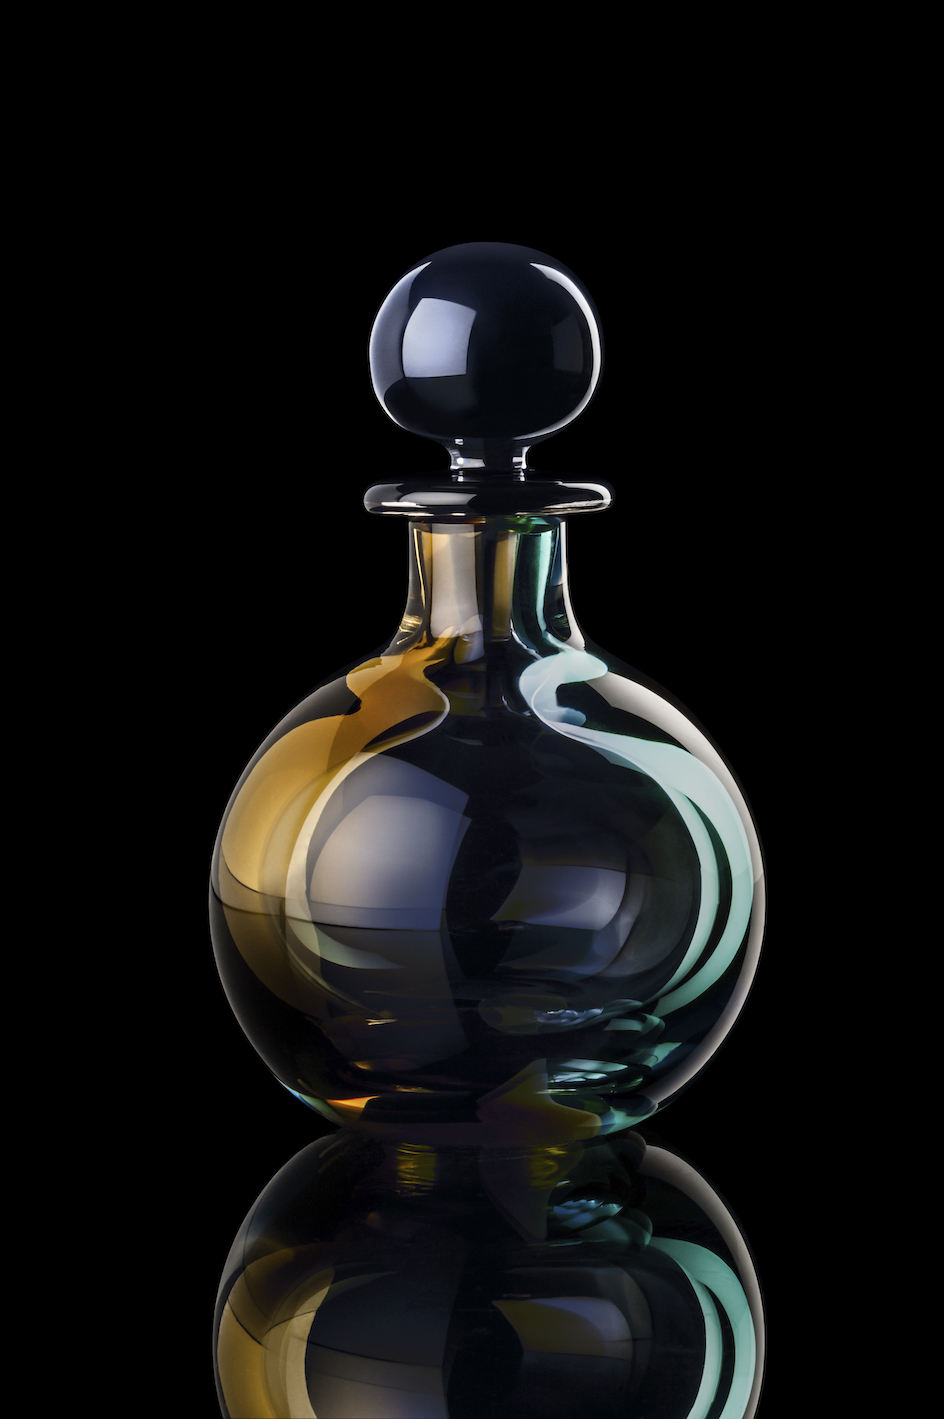 Could This Be the Most Beautiful Perfume Bottle in the World?